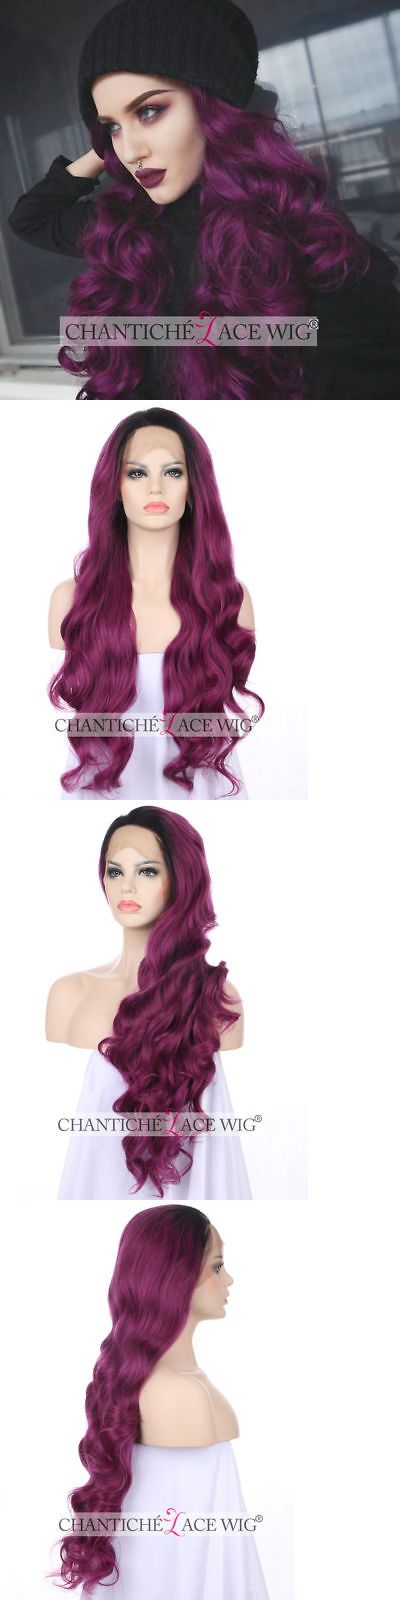 Wigs and Hairpieces: Long Wavy Purple Wig Fashion Lace Front Synthetic Hair Wigs For Women Heat Good -> BUY IT NOW ONLY: $42.99 on eBay!